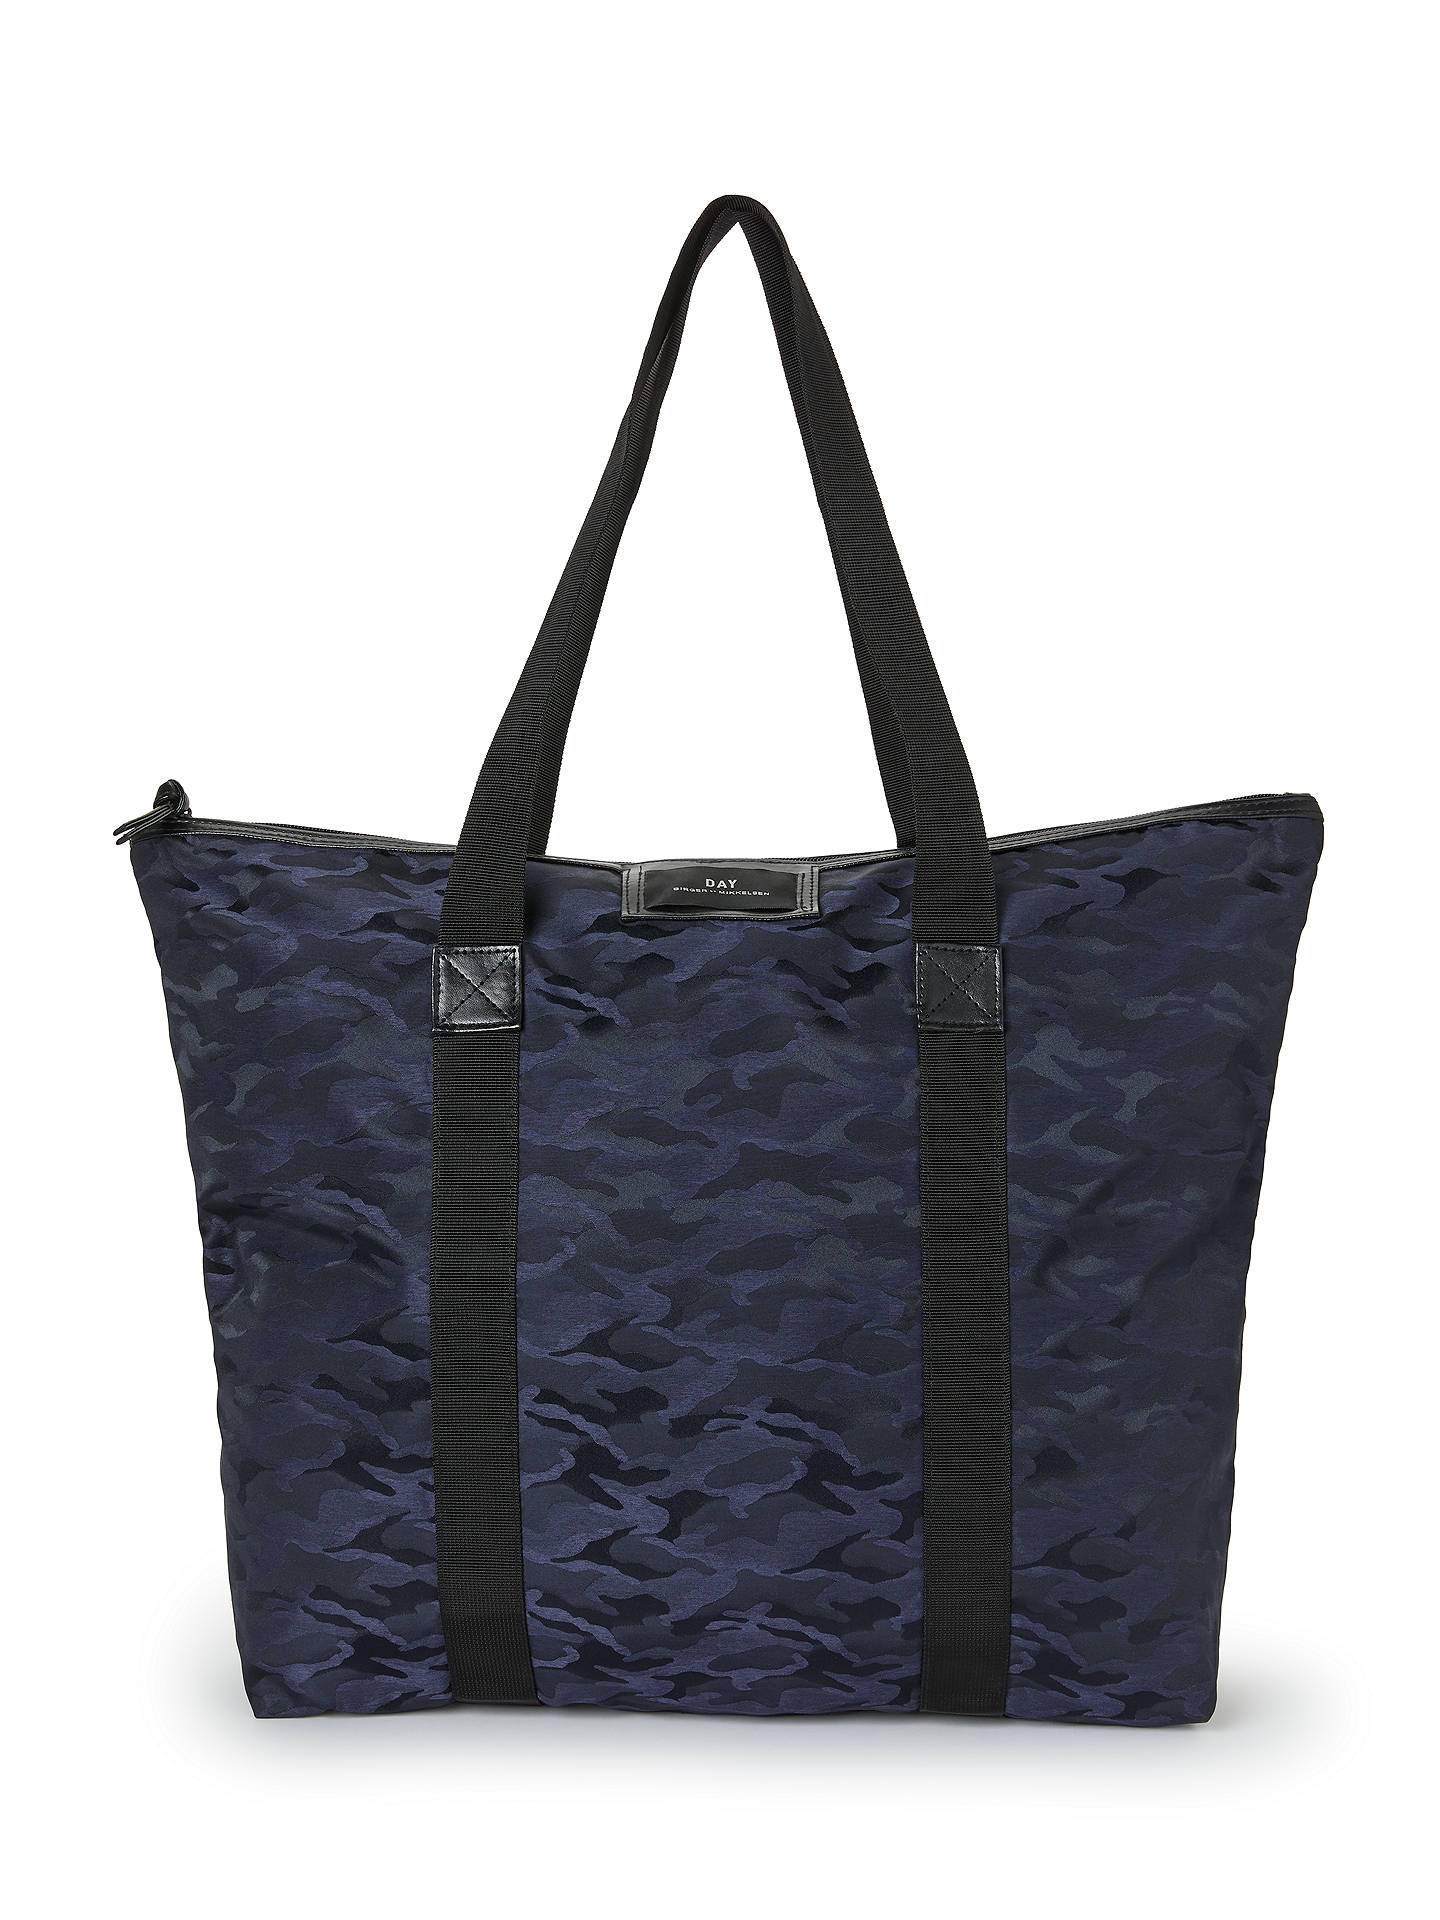 BuyDAY BIRGER ET MIKKELSEN Day Gweneth Printed Tote Bag f614a1aa0